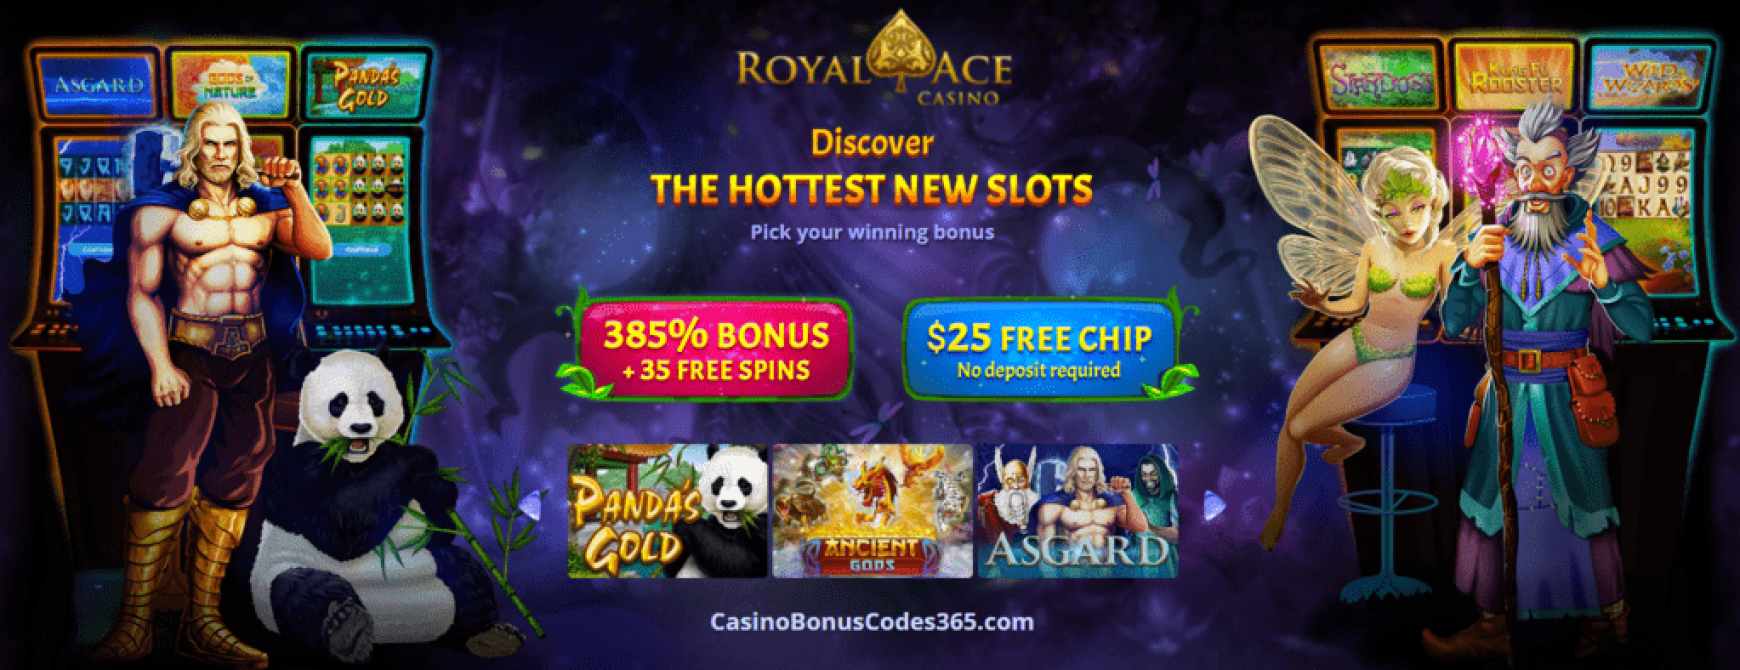 Royal Ace Casino 385% Match Bonus plus 35 FREE Spins with $25 FREE Chip on Top